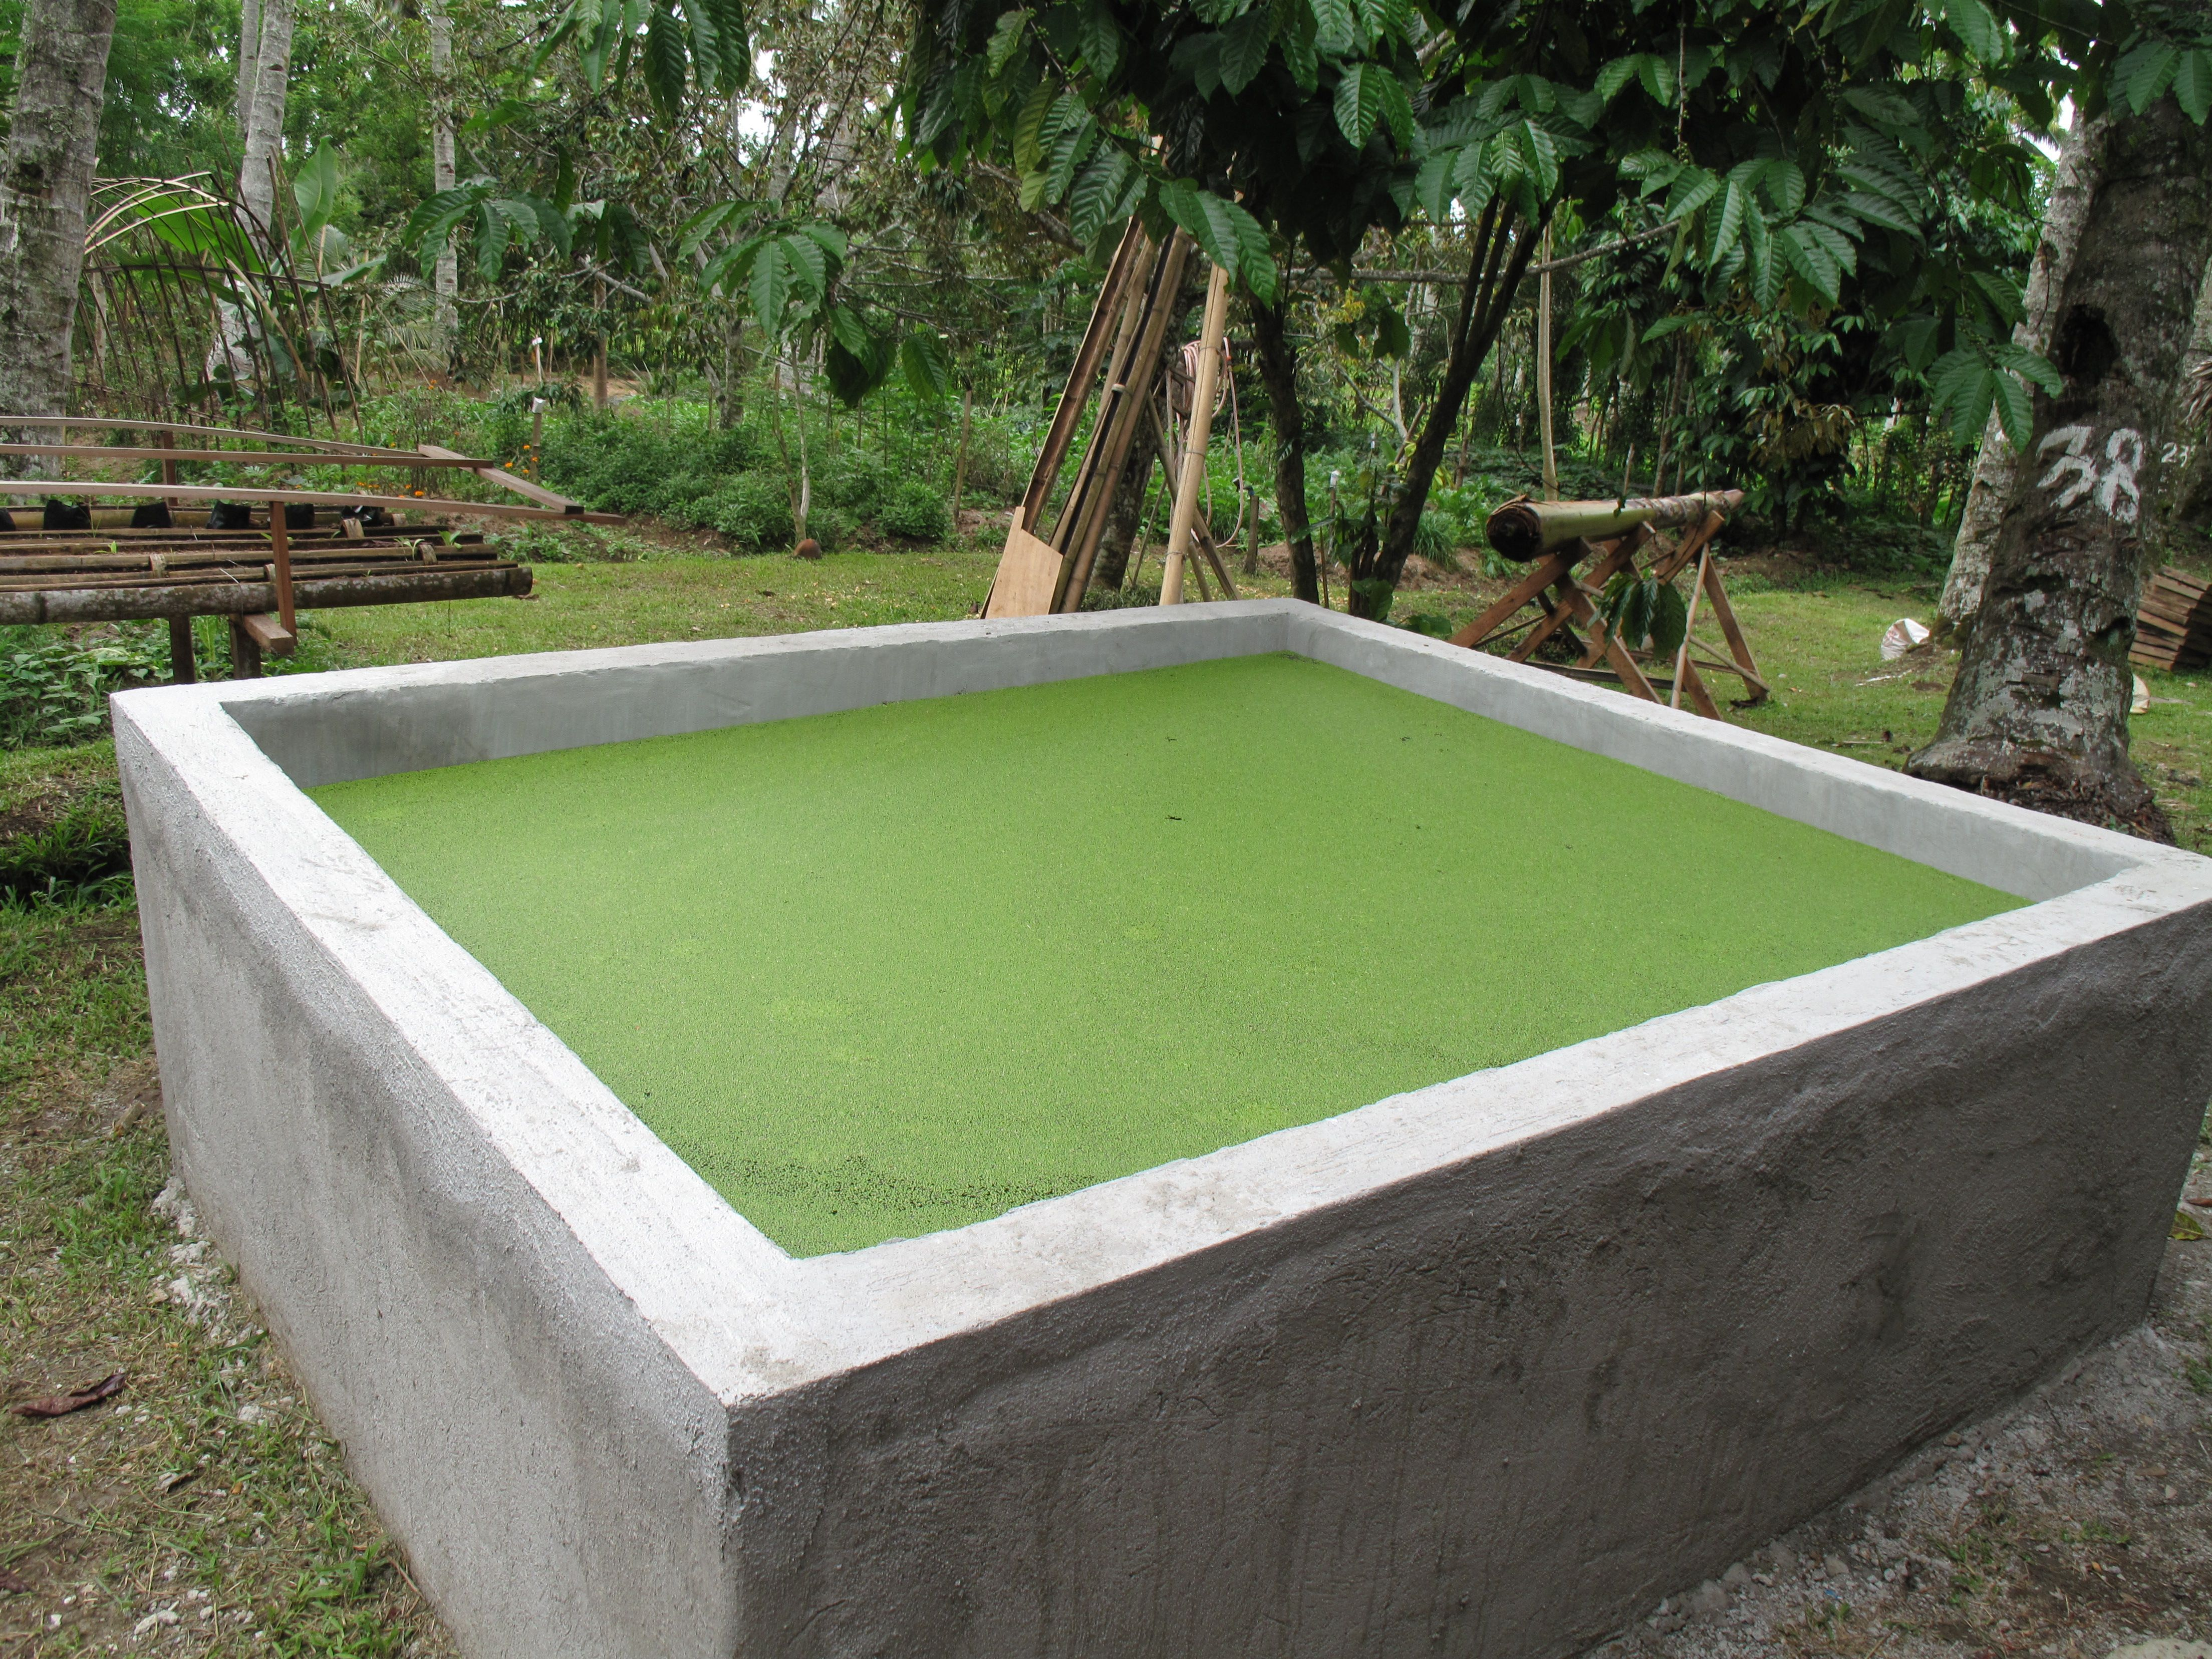 One Of Three Duckweed Ponds For Making Fish And Animal Feed